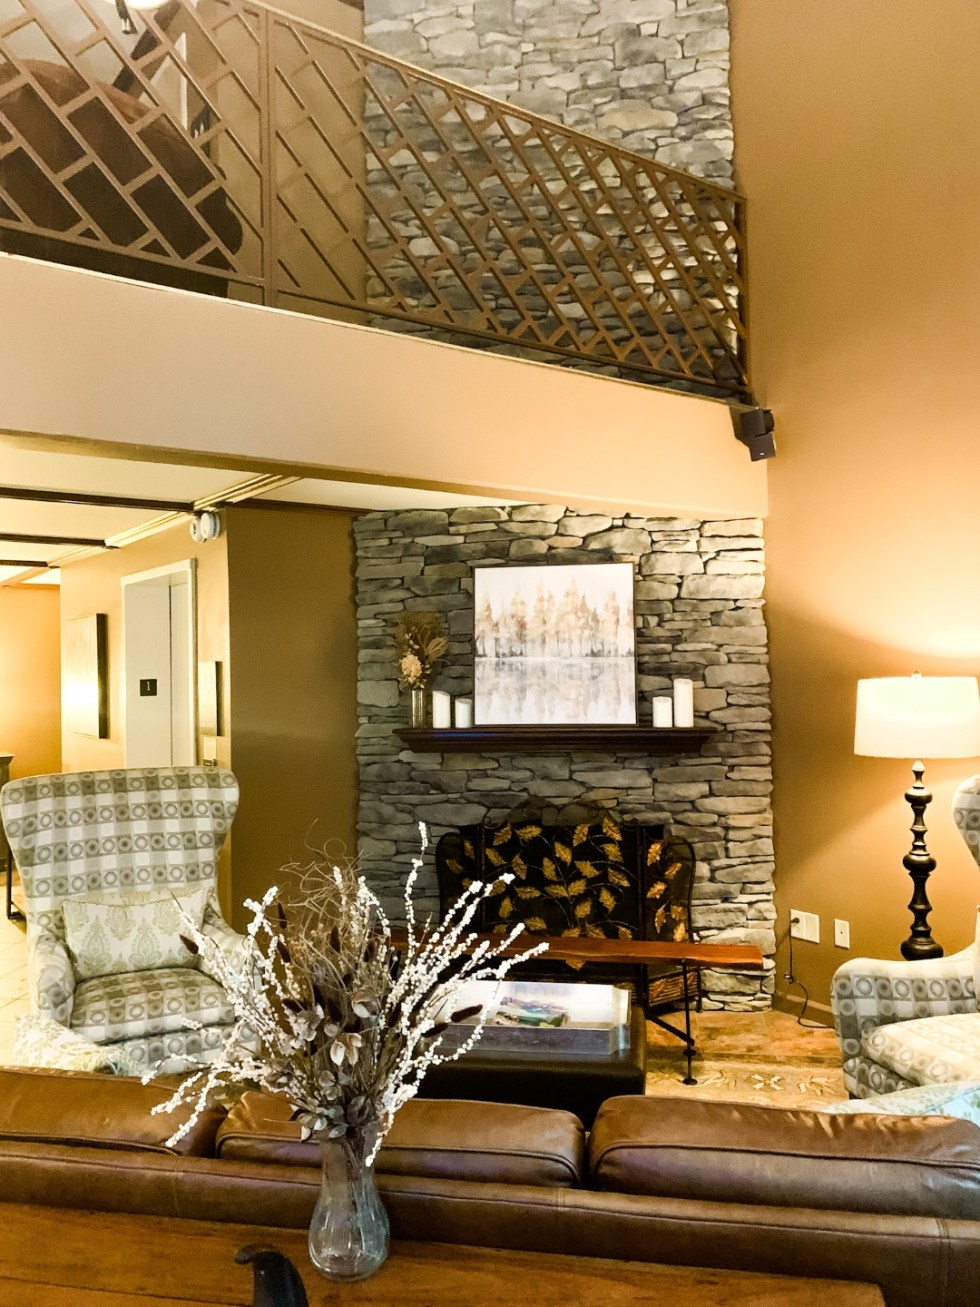 Meadow Brook Inn Blowing Rock by popular N.C. travel blog, I'm Fixin' To: image of the Meadow Brook Inn lobby.